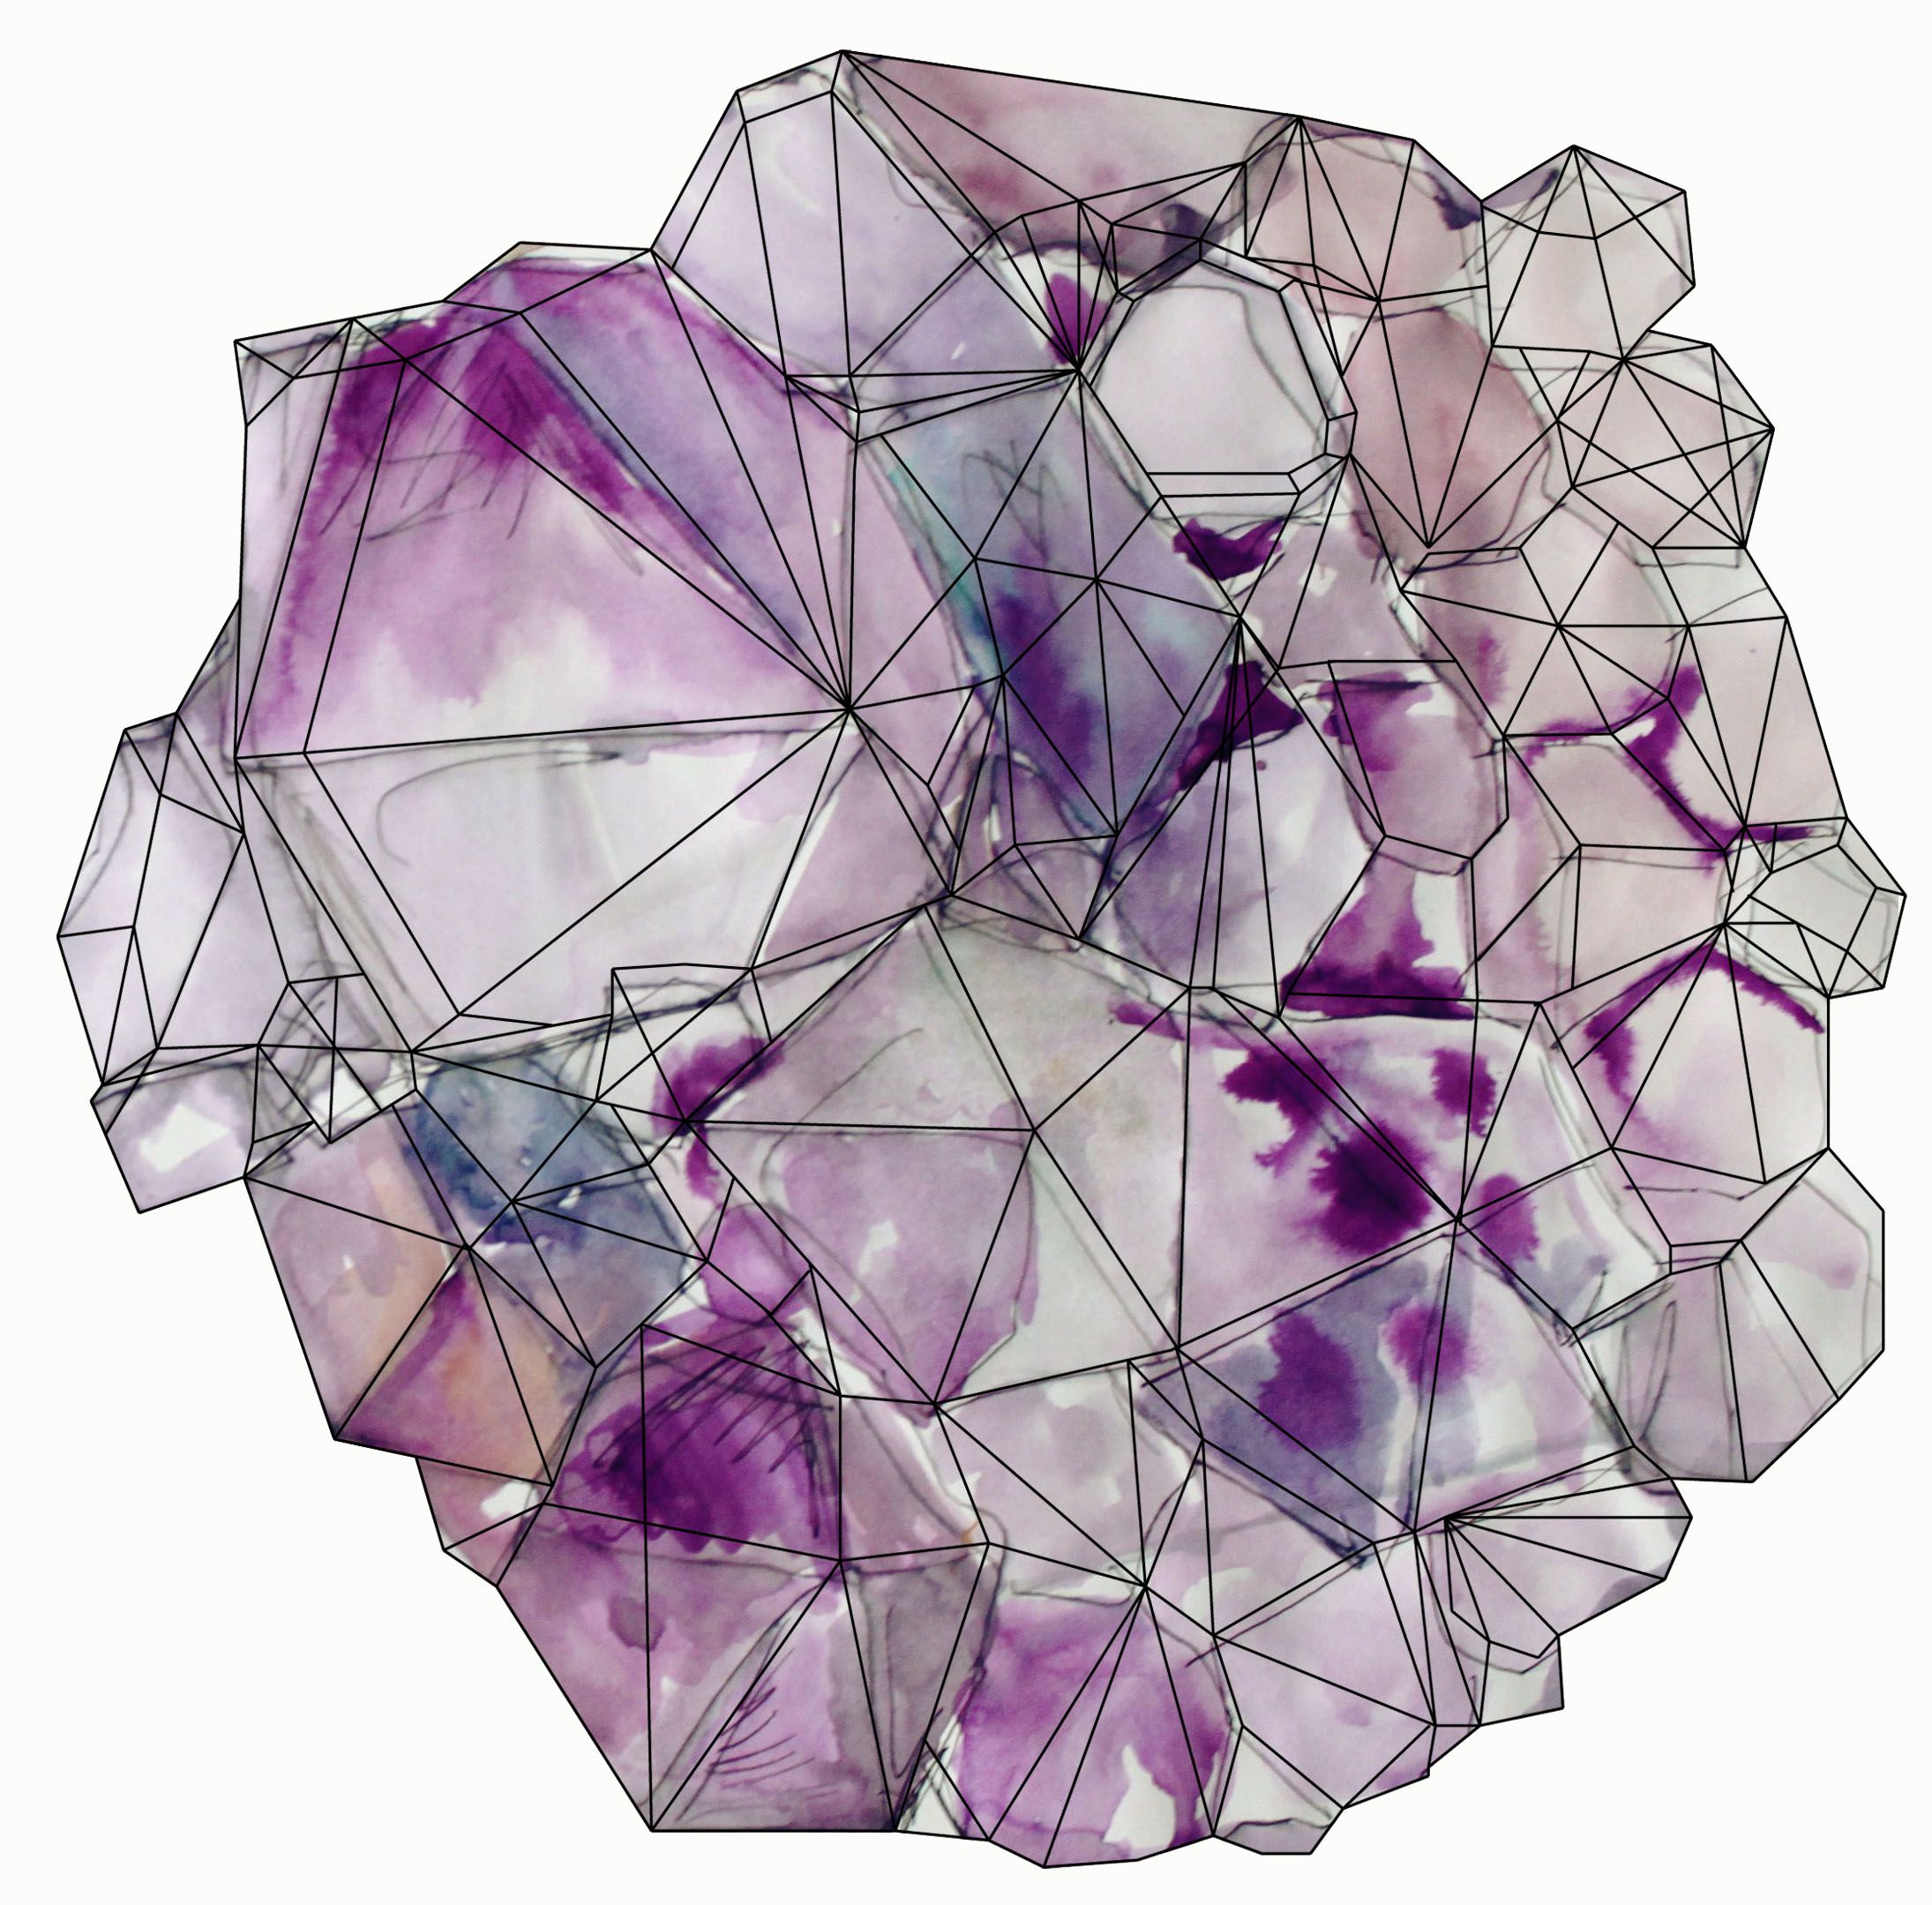 Crystal illustration geometric google search art for Paintings of crystals